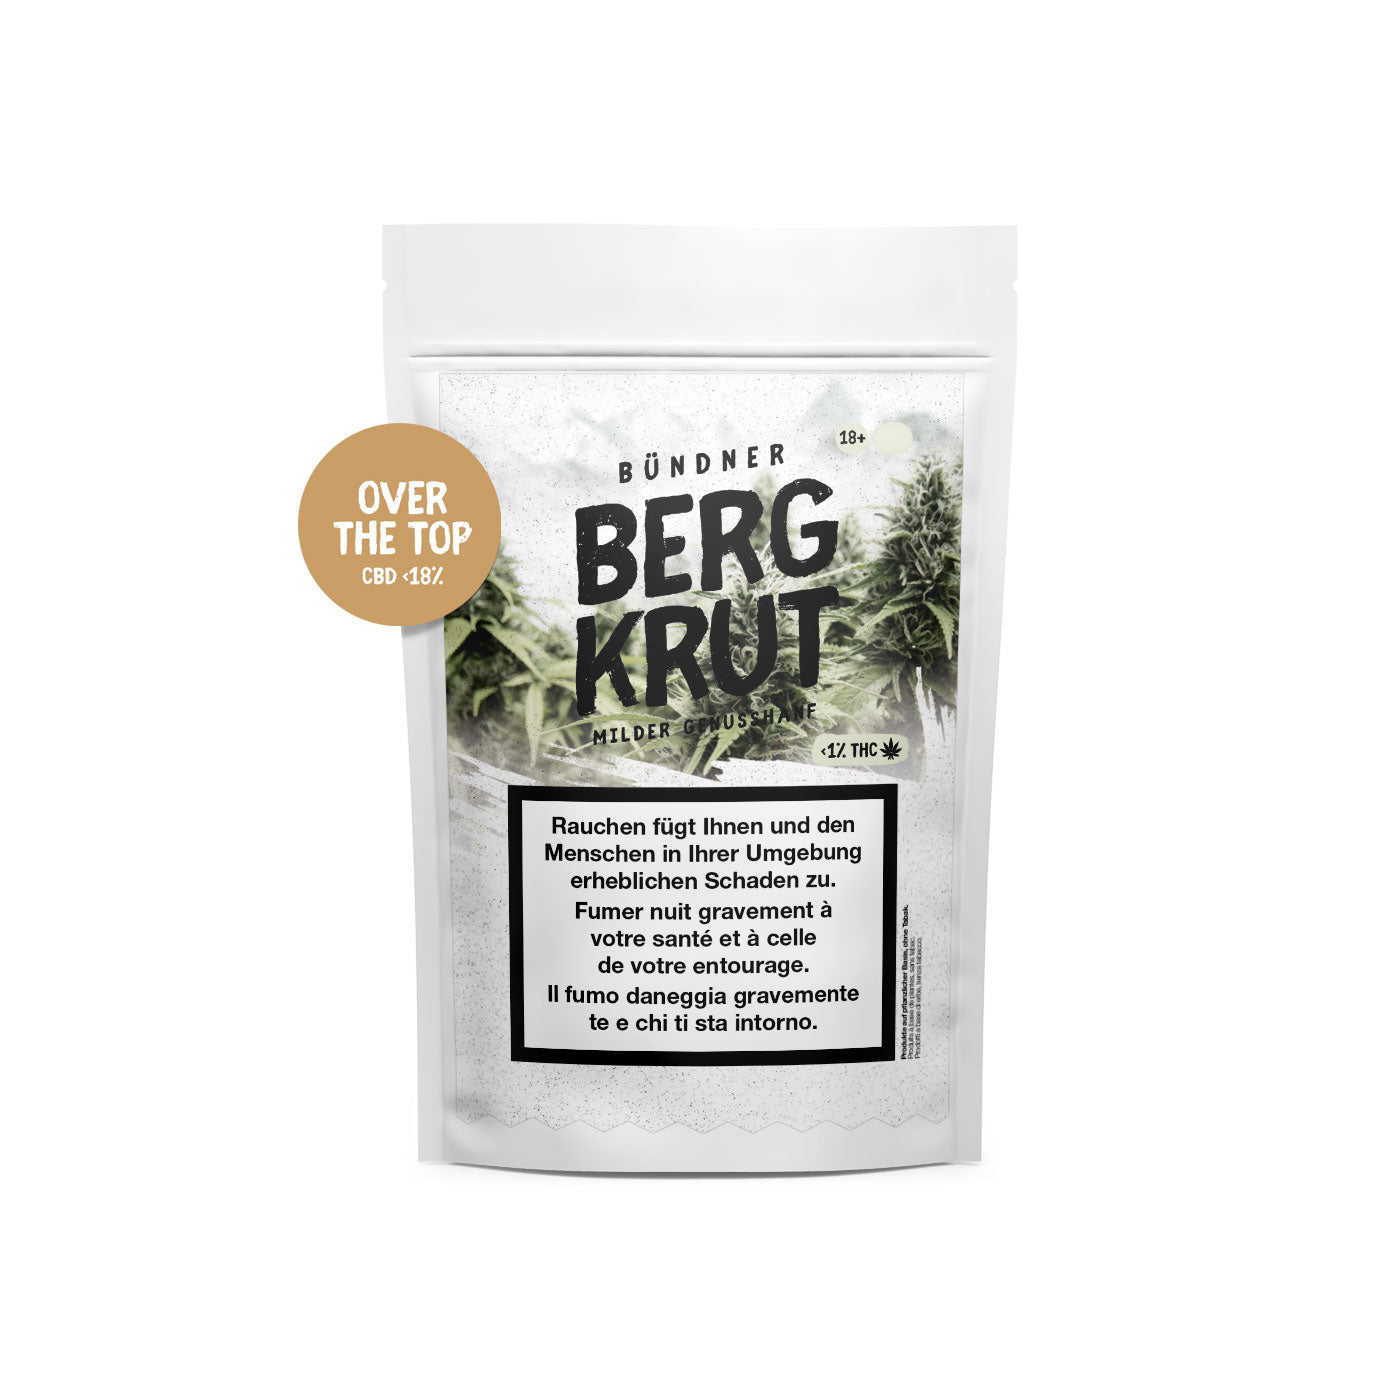 Over the Top | Bergkrut | CBD Cannabis | uWeed | Swiss CBD Shop